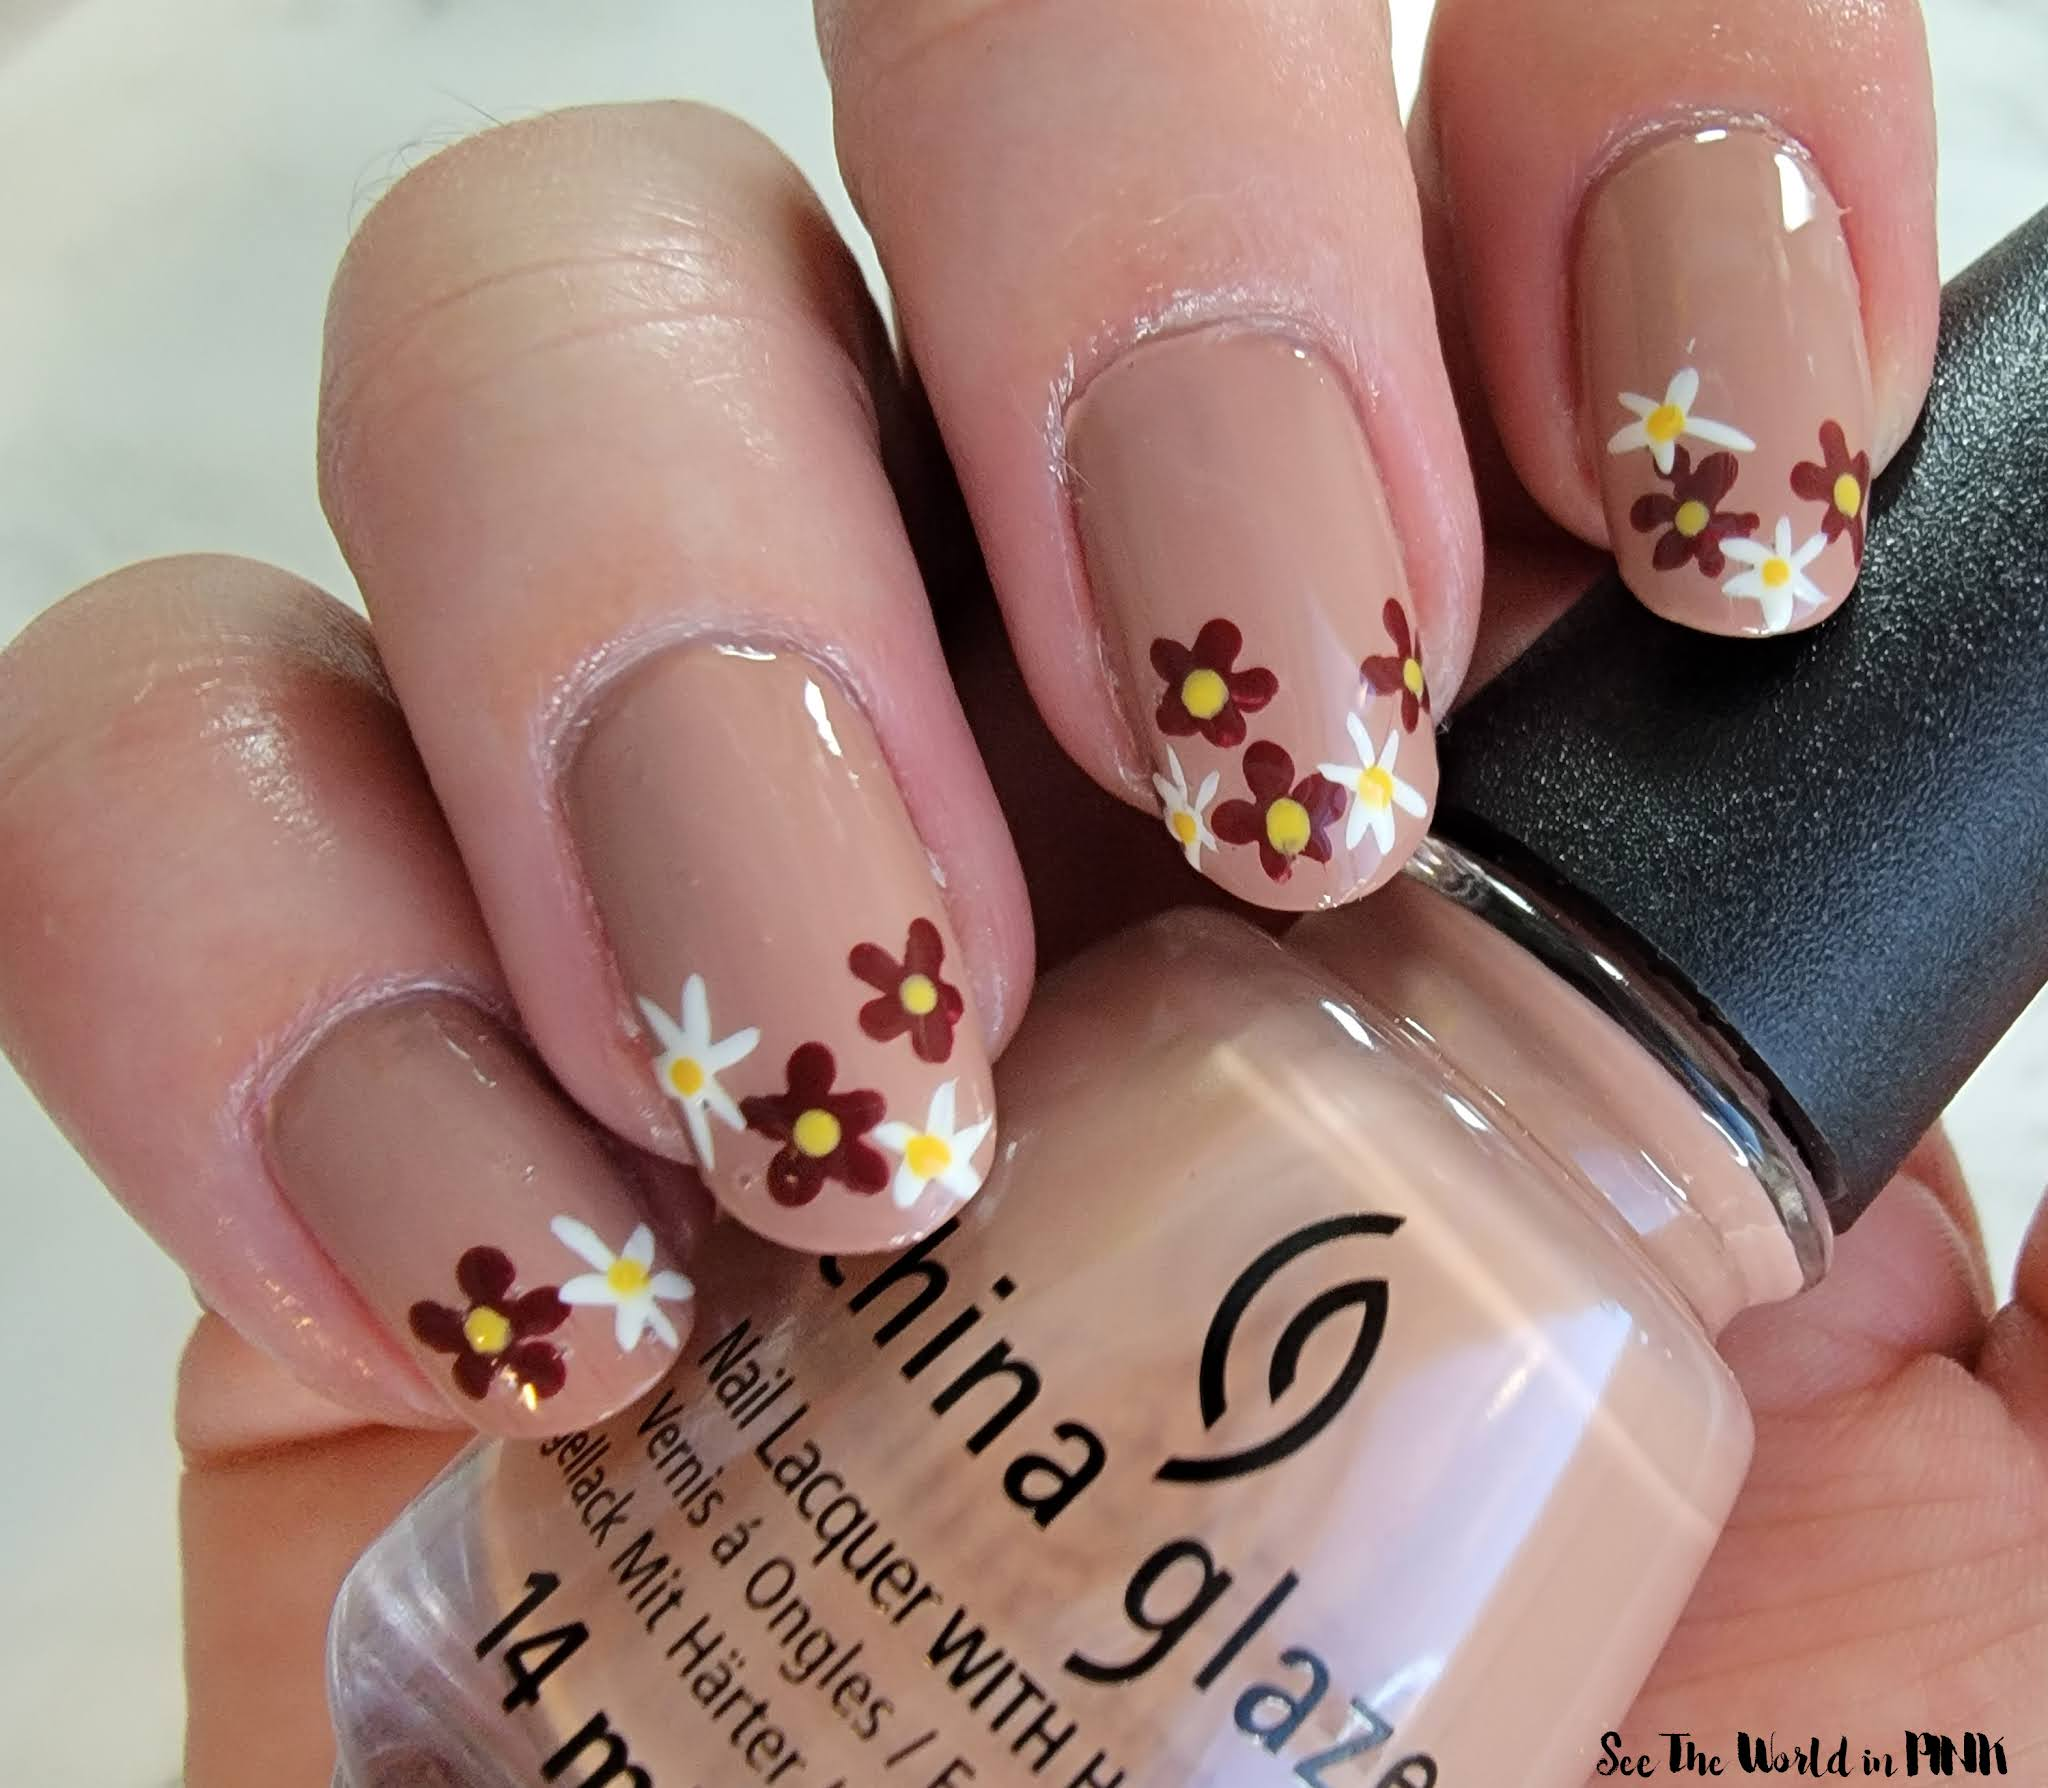 Manicure Sunday - Neutral Fall Floral Nails